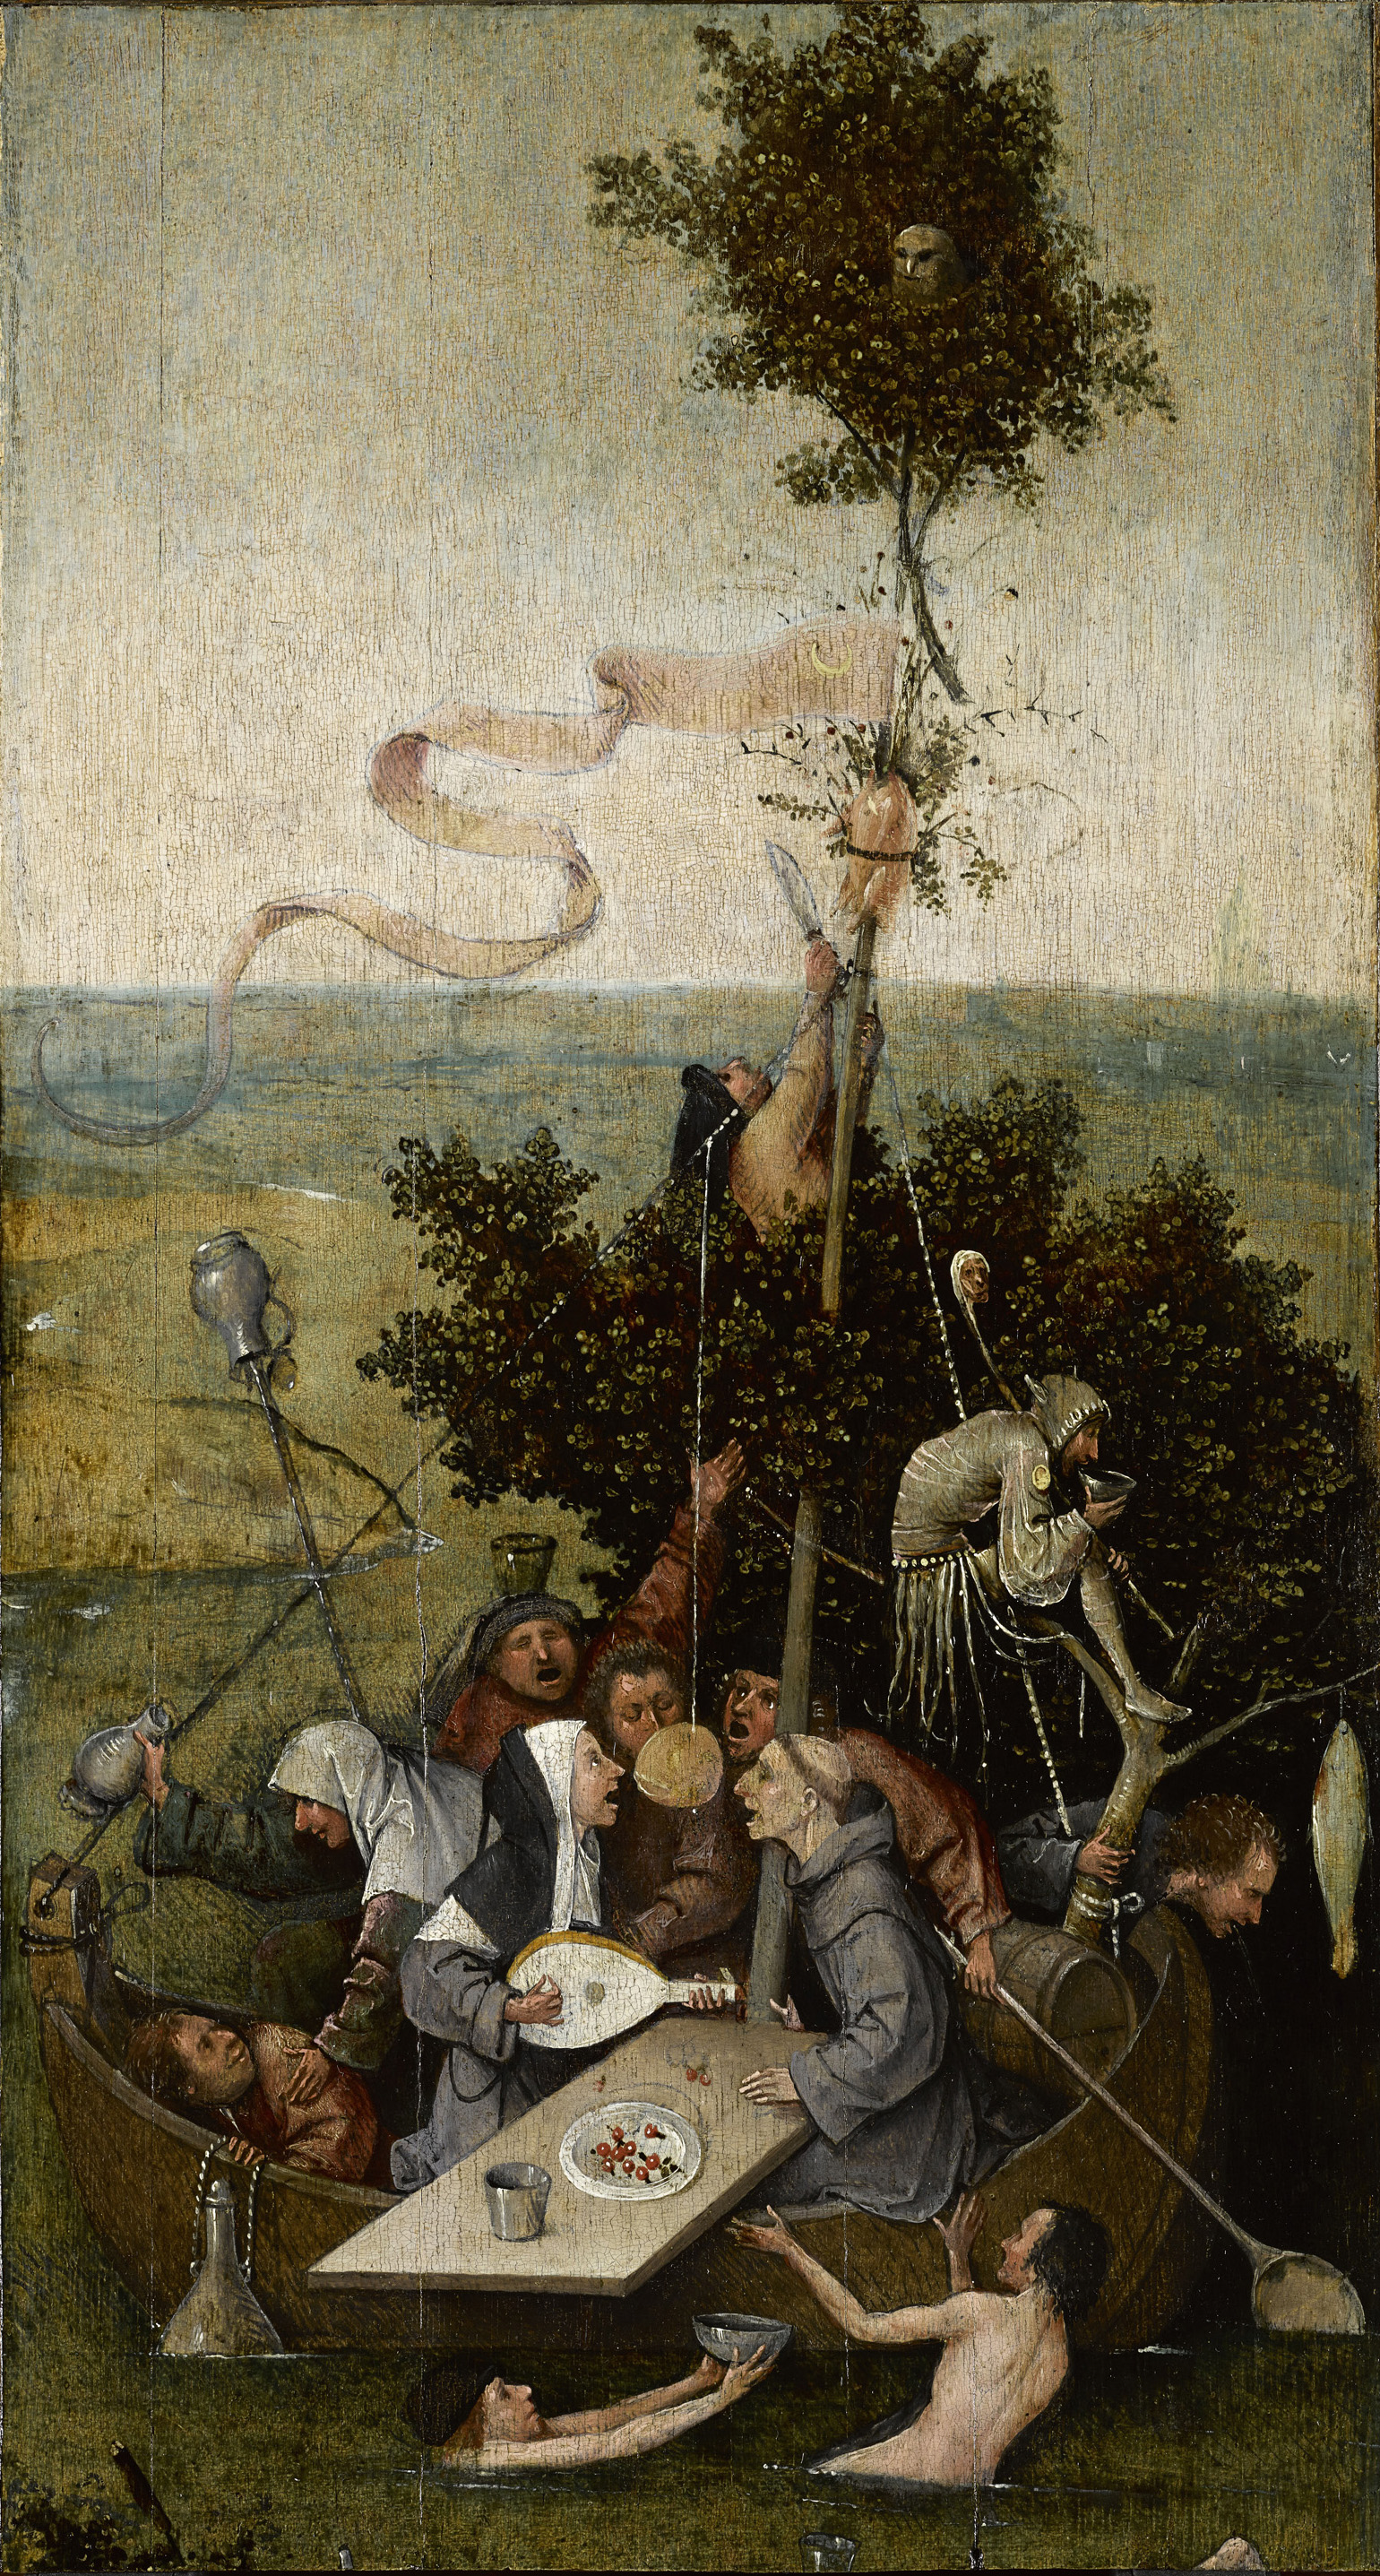 http://upload.wikimedia.org/wikipedia/commons/a/a2/Jheronimus_Bosch_011.jpg